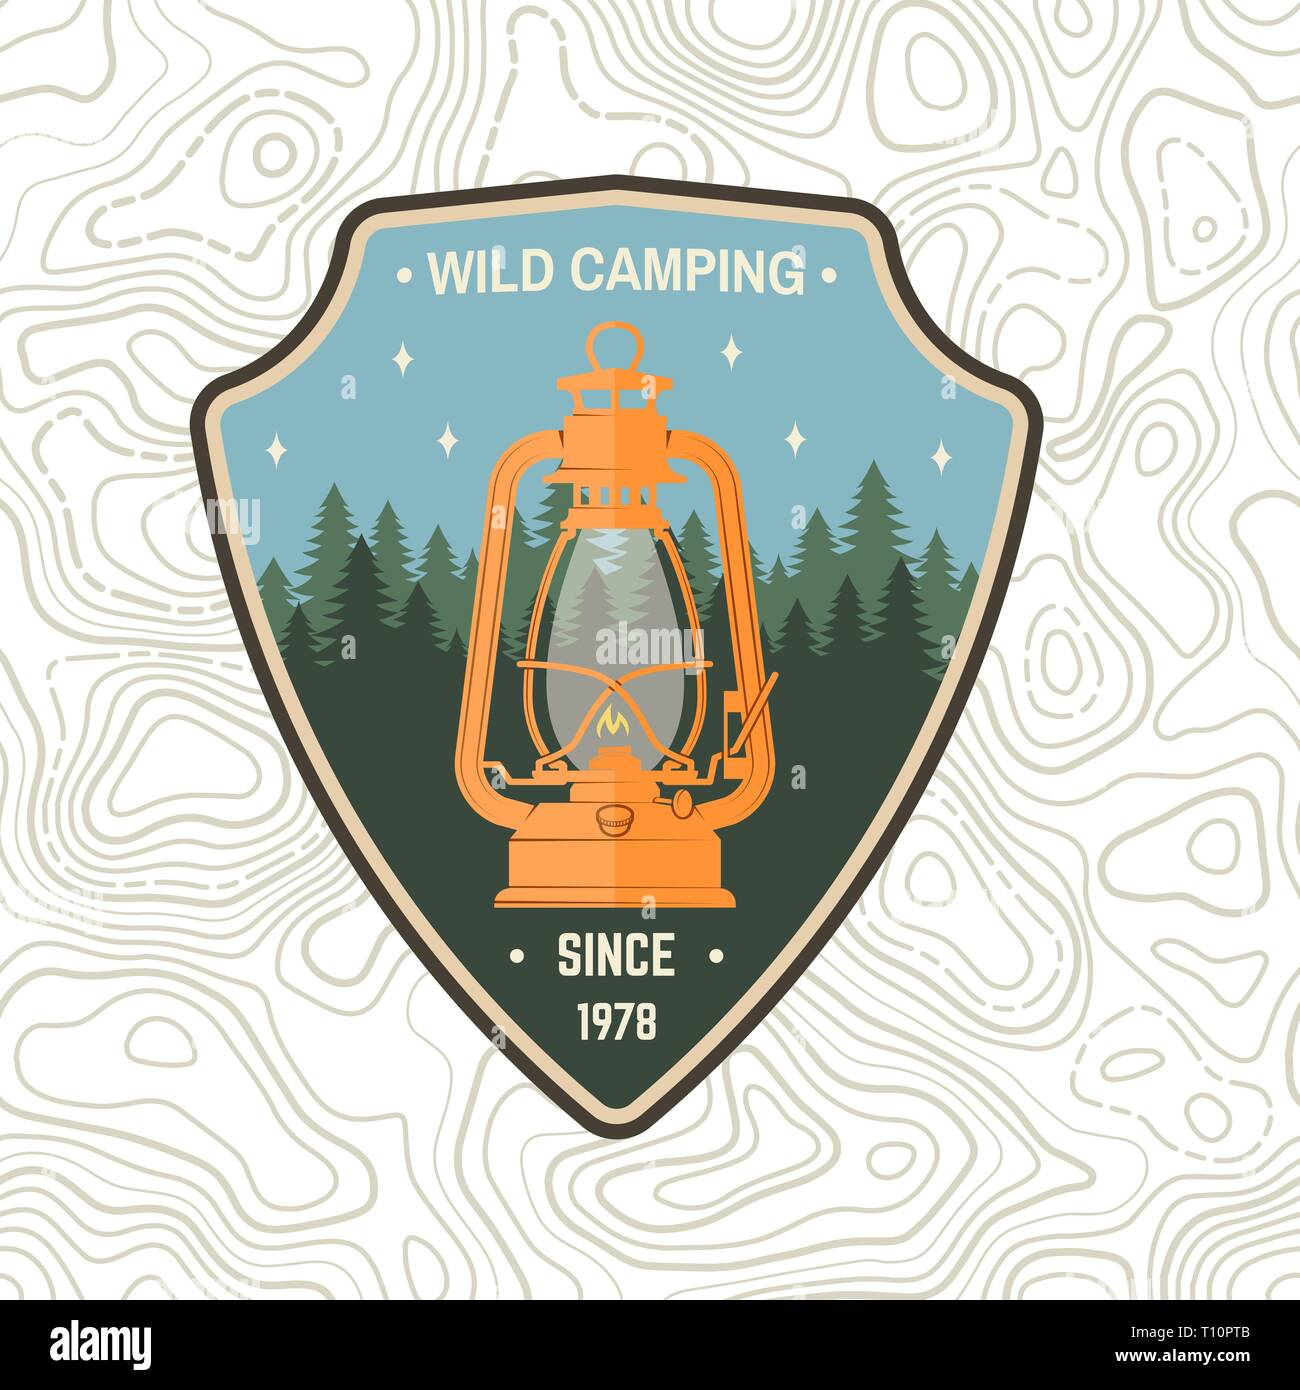 Wild camping patch. Vector illustration. Concept for shirt, print, stamp, apparel or tee. Vintage typography design with camp lantern and forest silhouette. Outdoor adventure symbol - Stock Vector